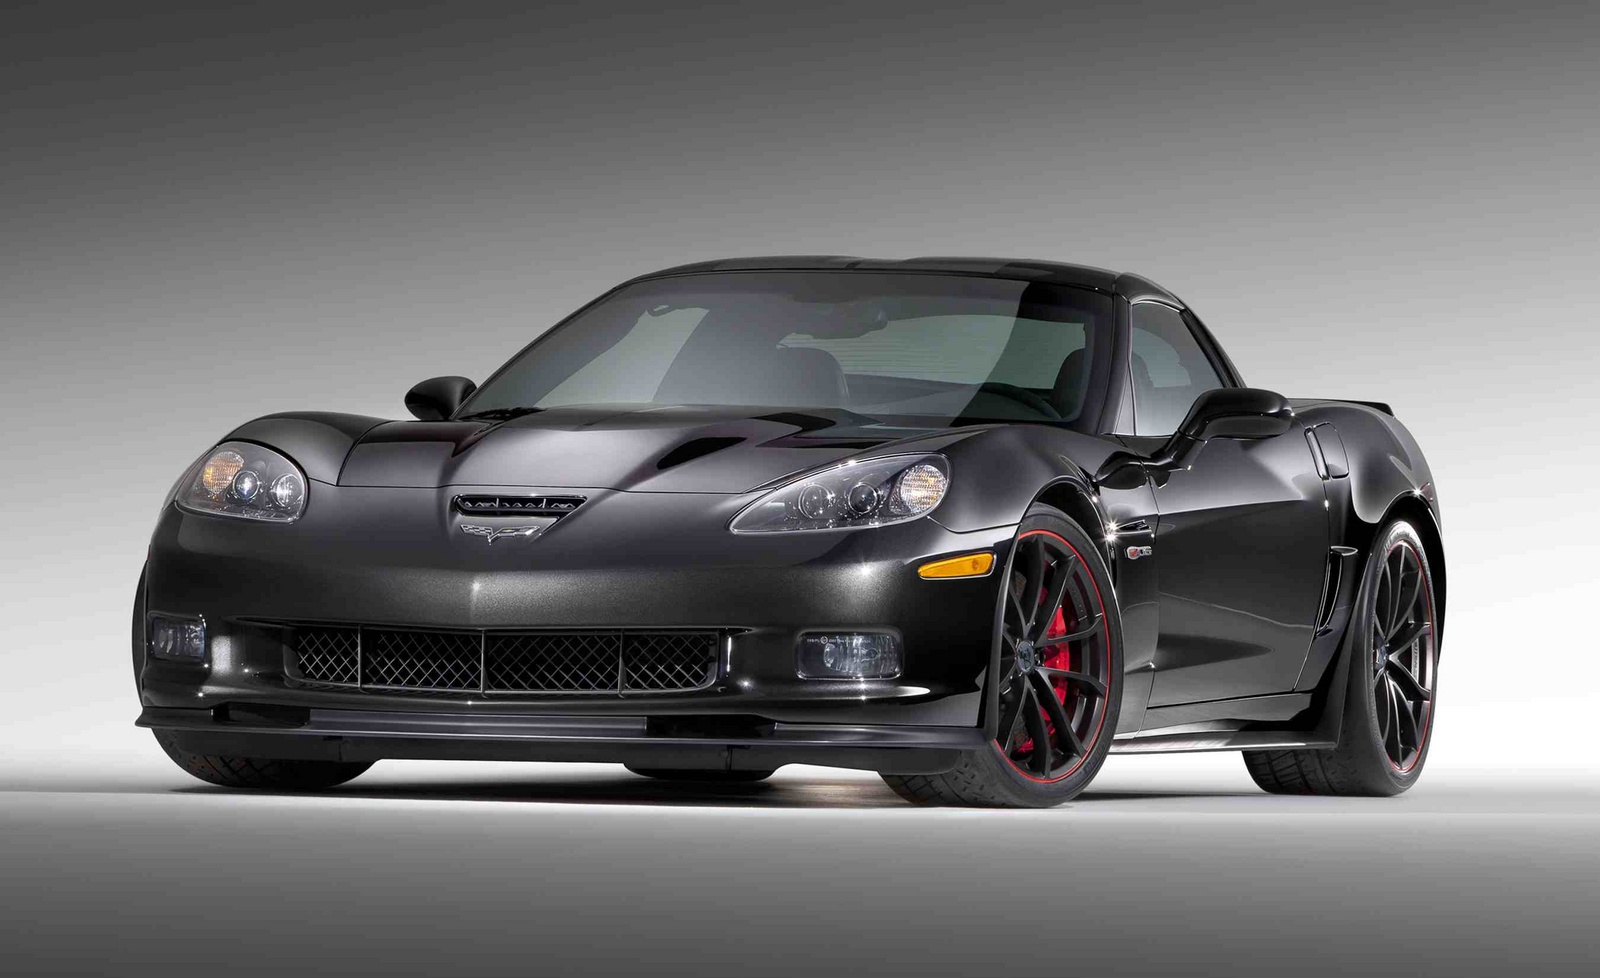 Chevrolet Corvette Pic on 2005 Chevrolet Corvette Coupe Specs